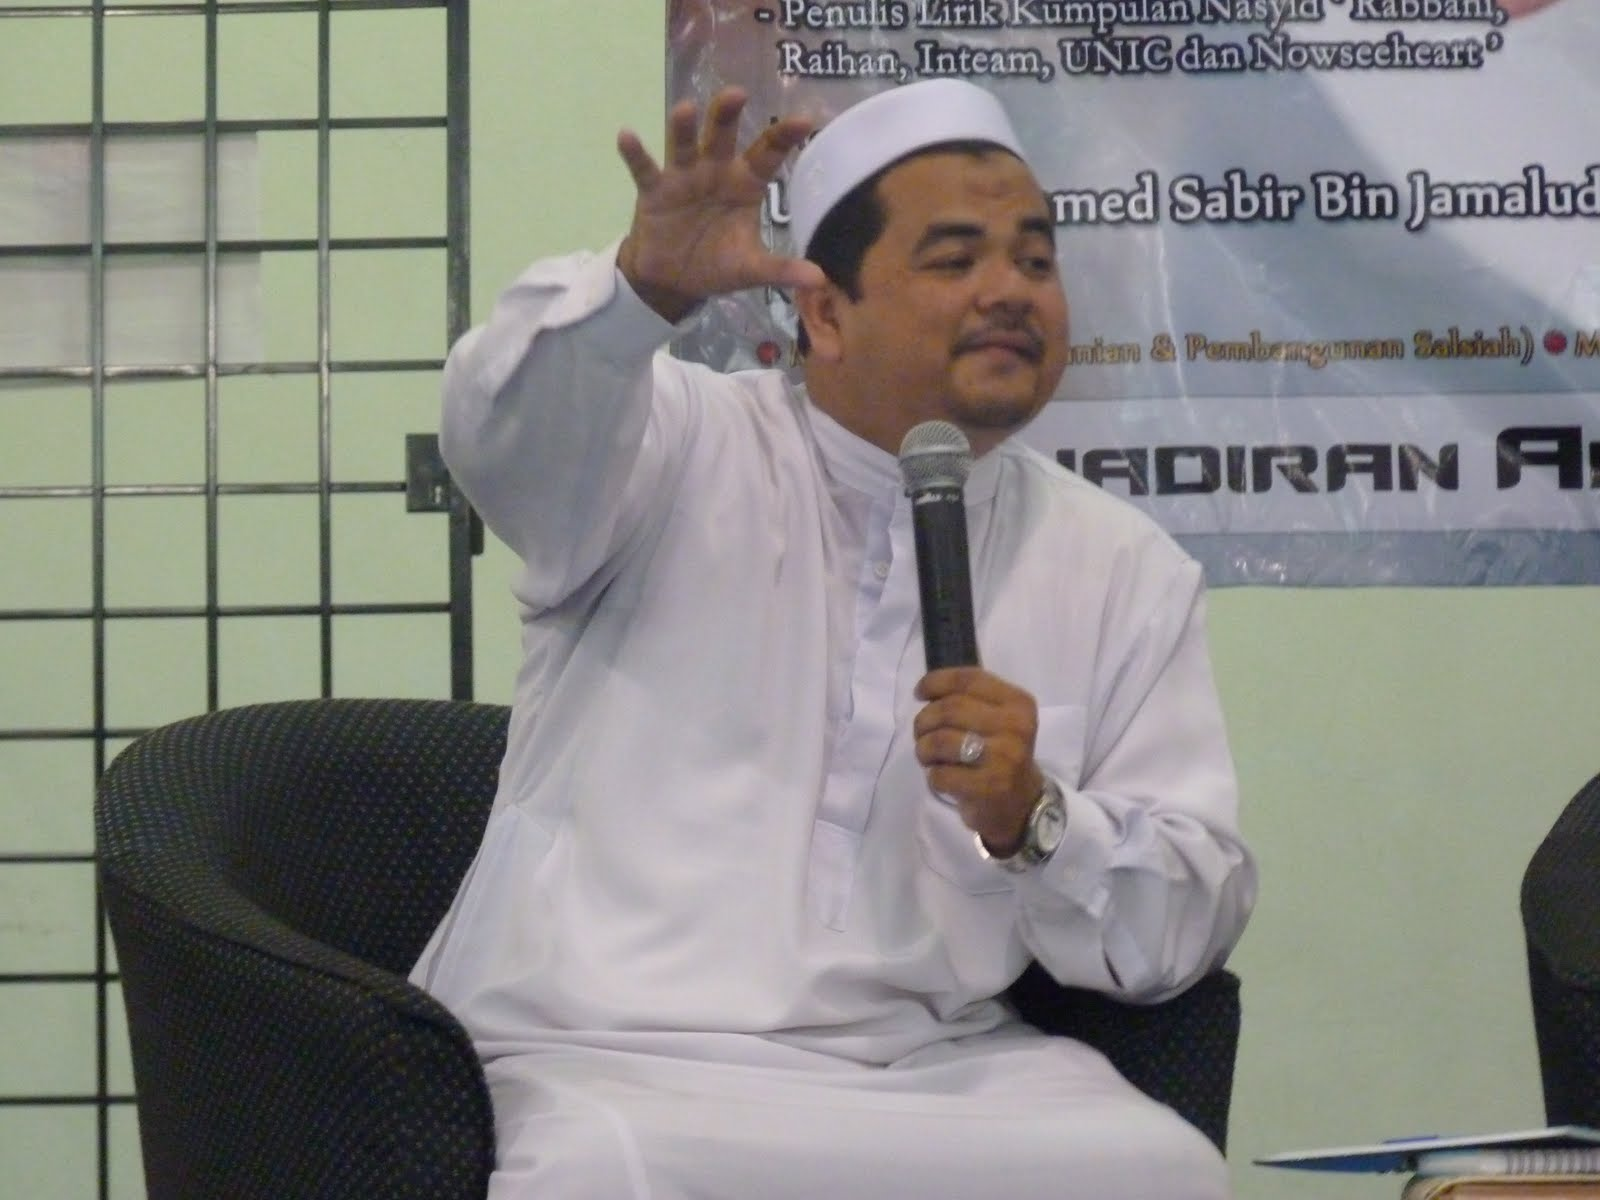 Dr. Ahmad Termizi Abdul Razak